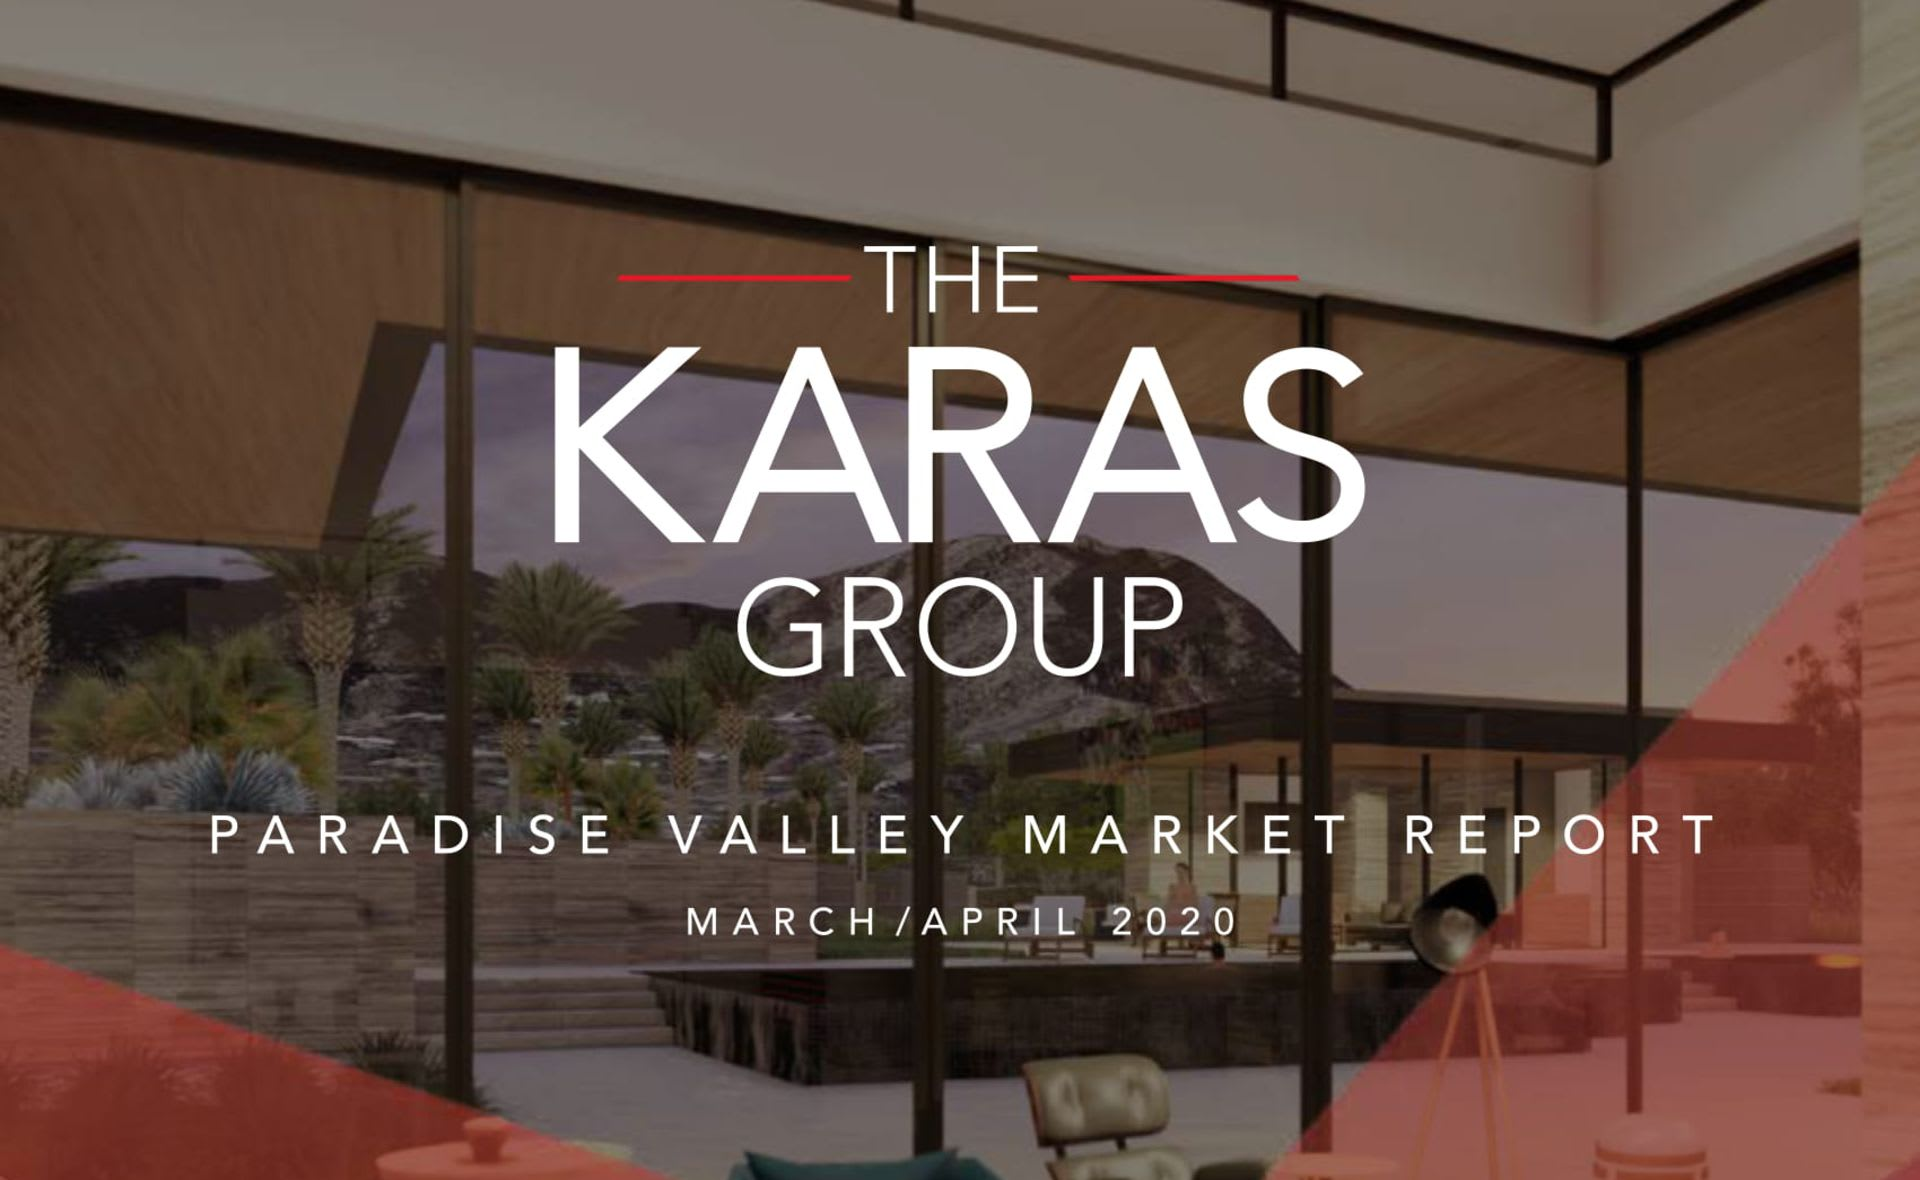 The Karas Group Paradise Valley Market Report (March - April 2020)